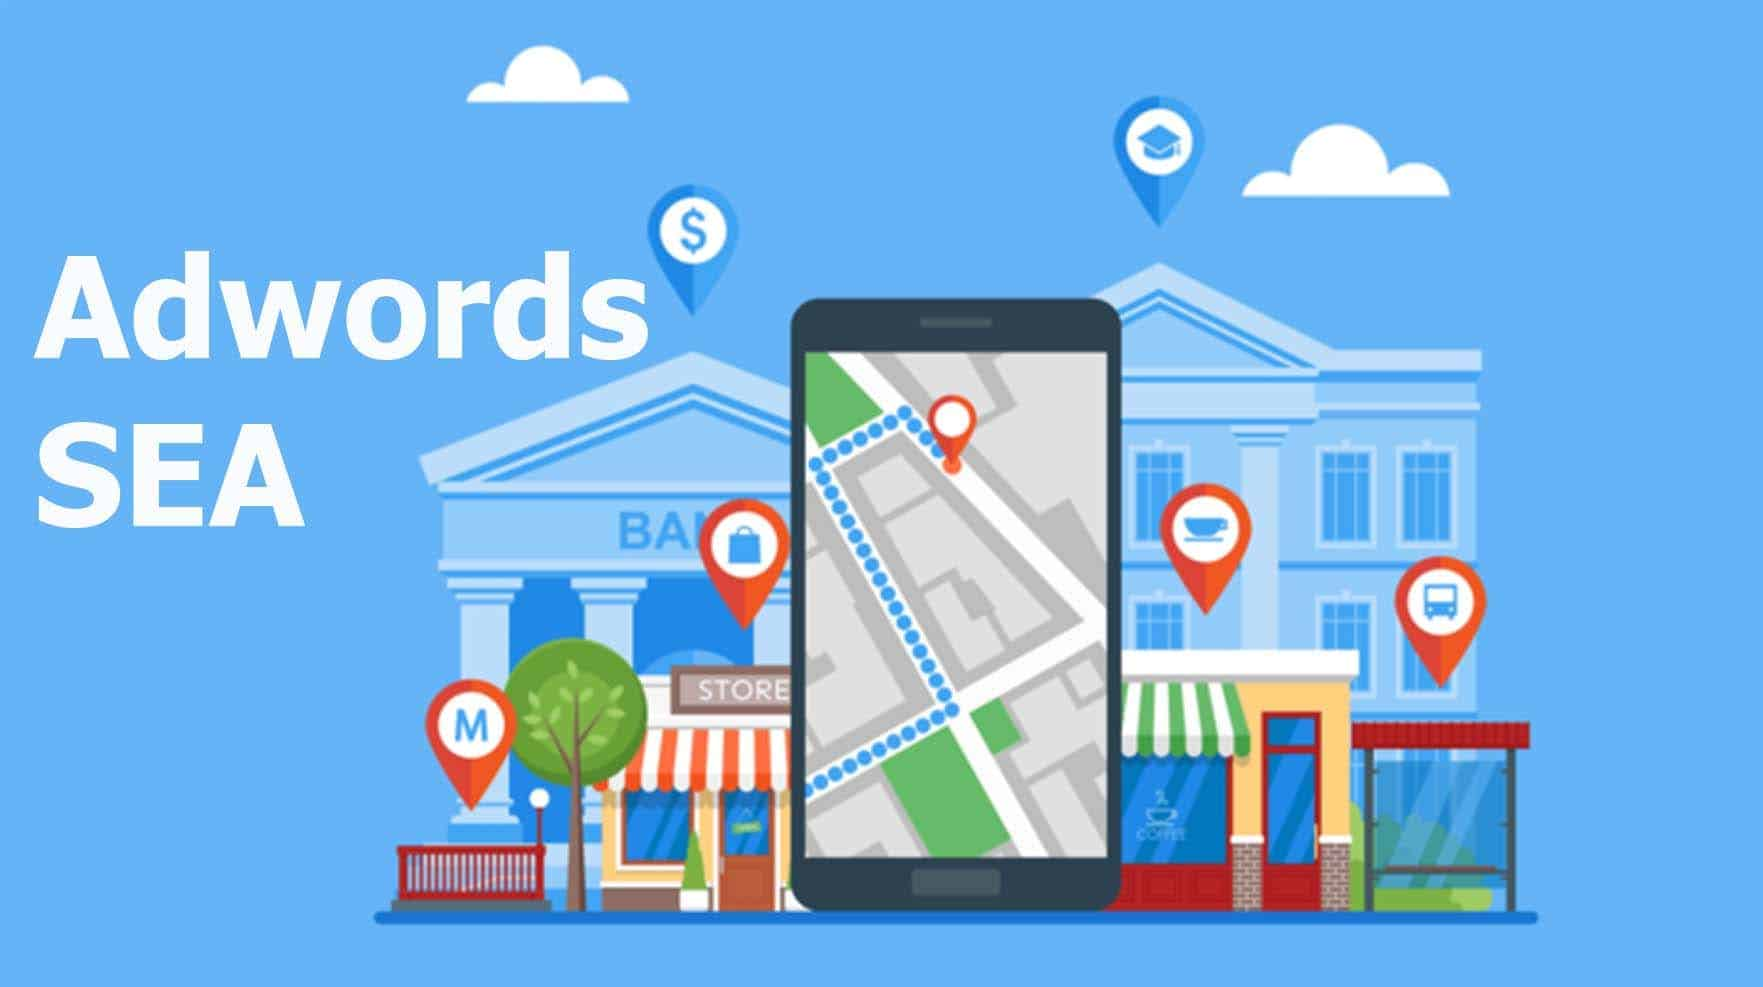 Prestation-SEA-Adwords-Agence-SEA-Referencement-payant-Adwords